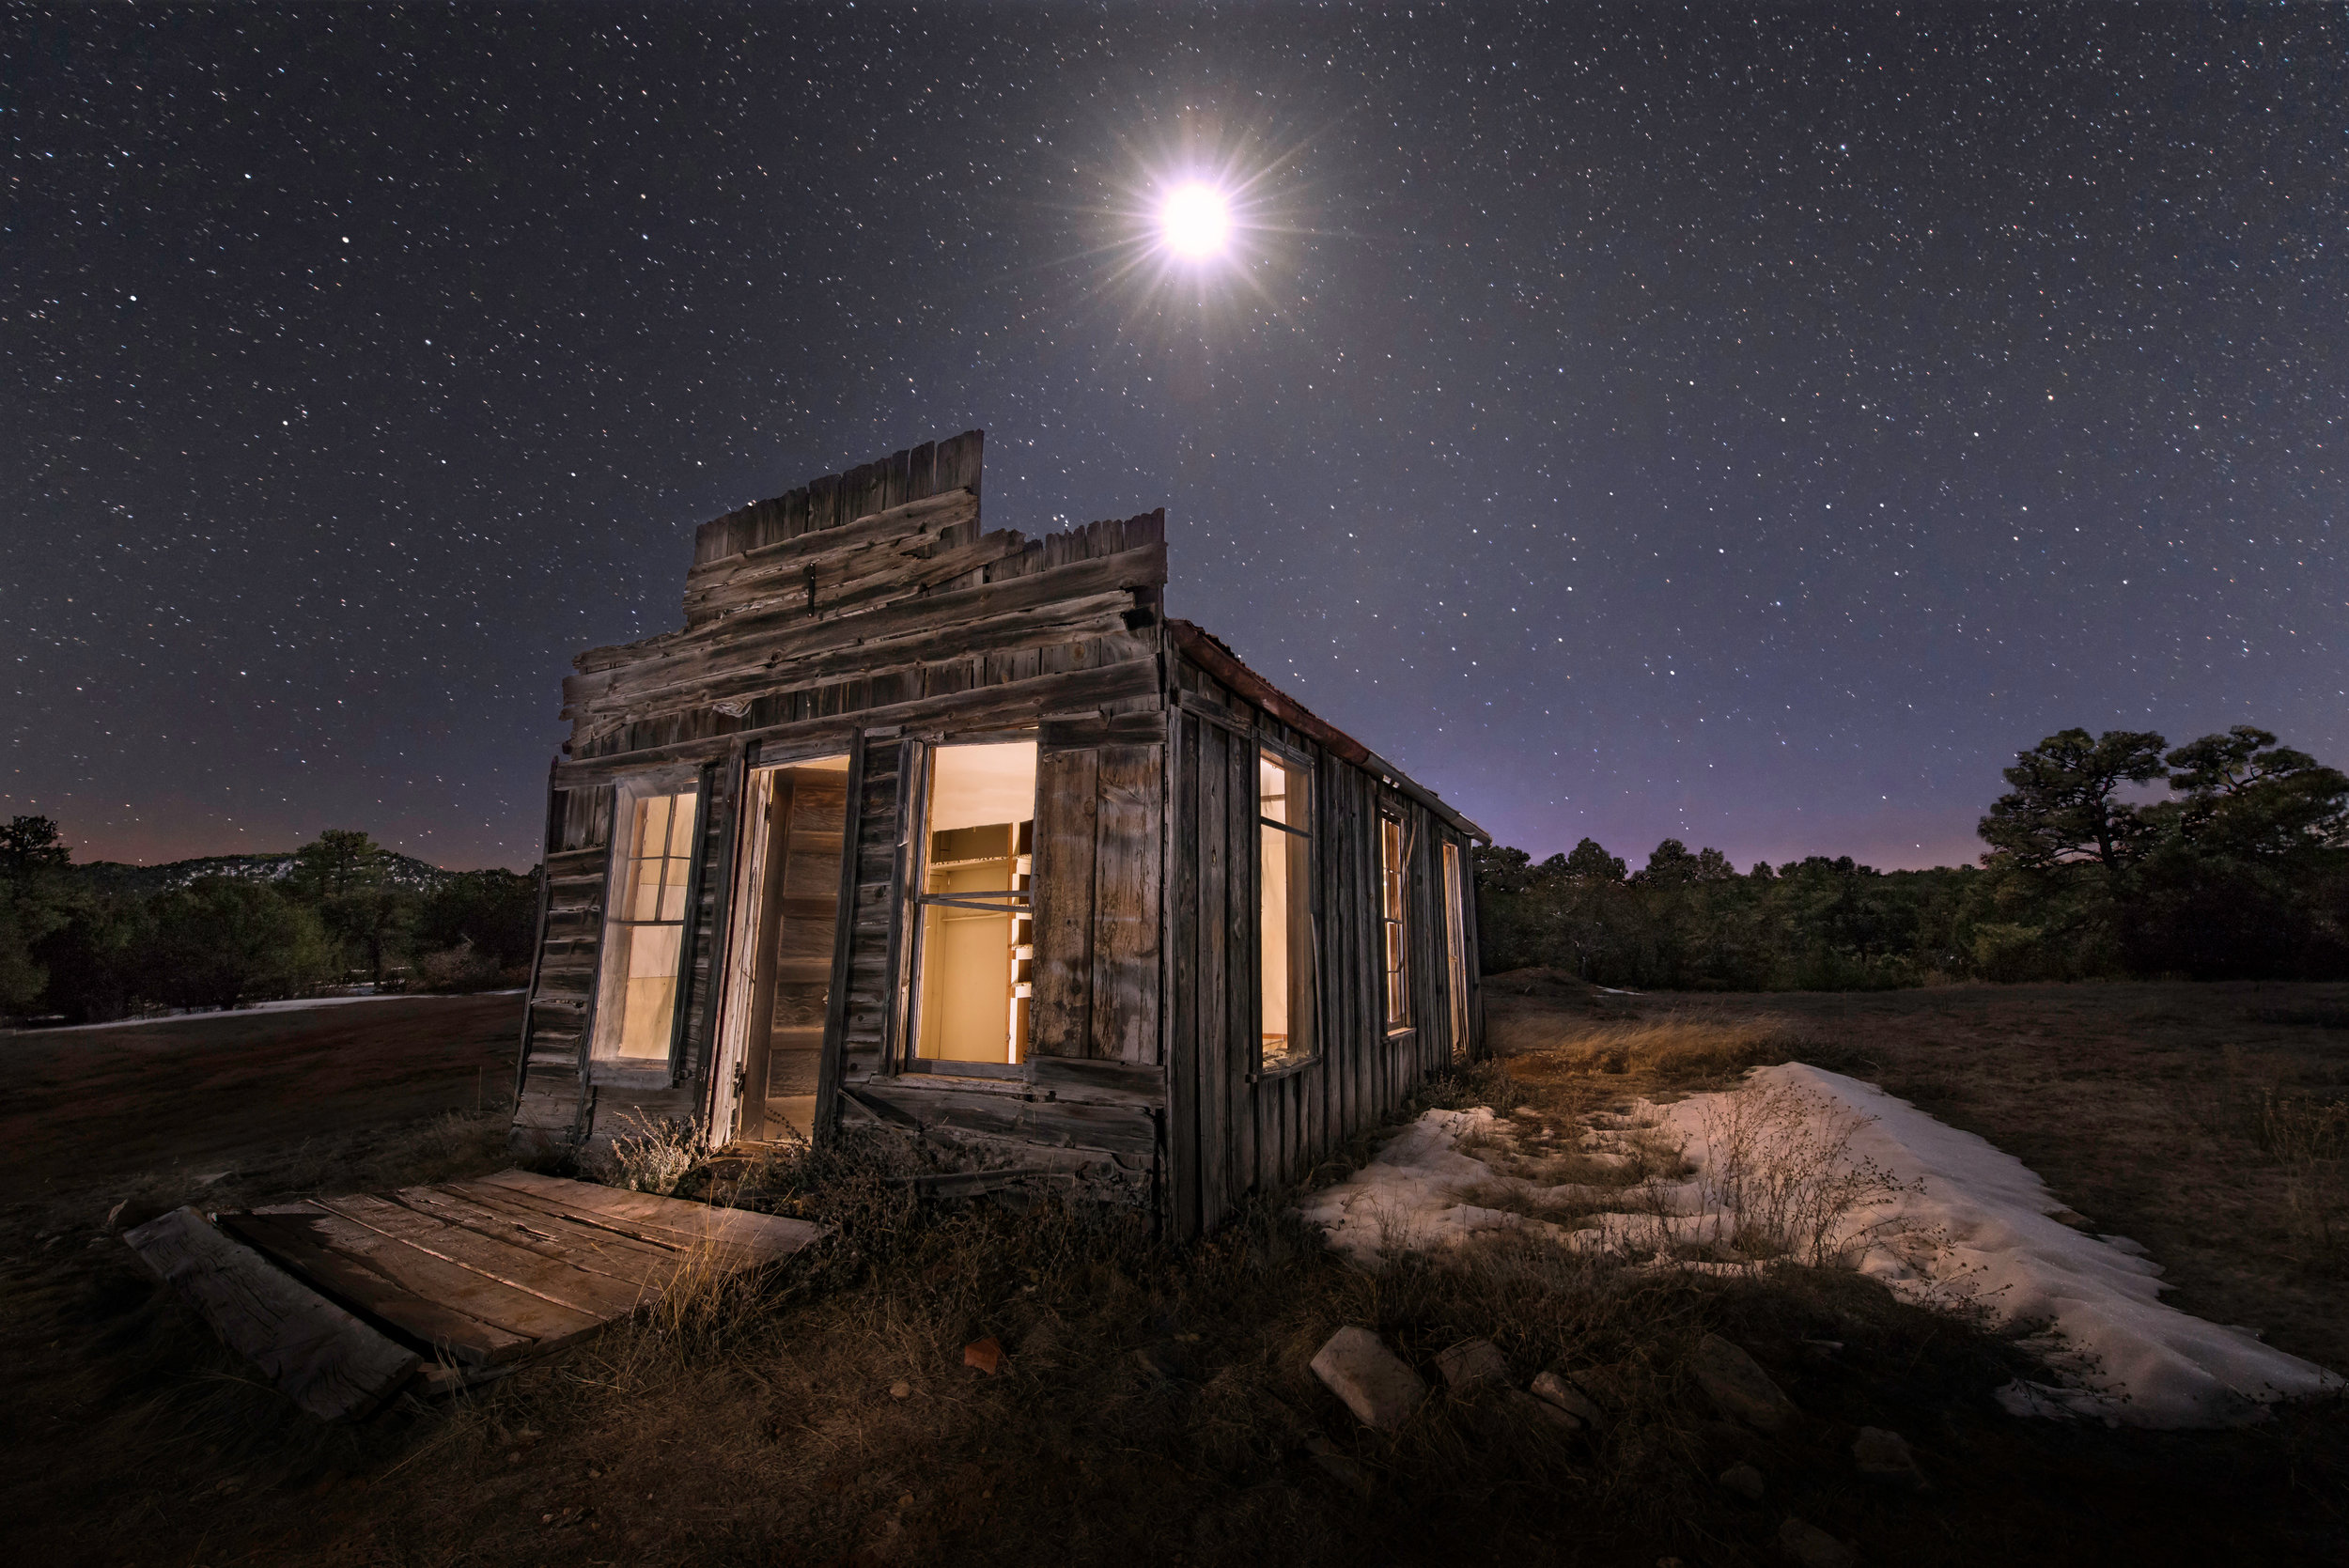 muench-workshops-new-mexico-night-sky-12.jpg